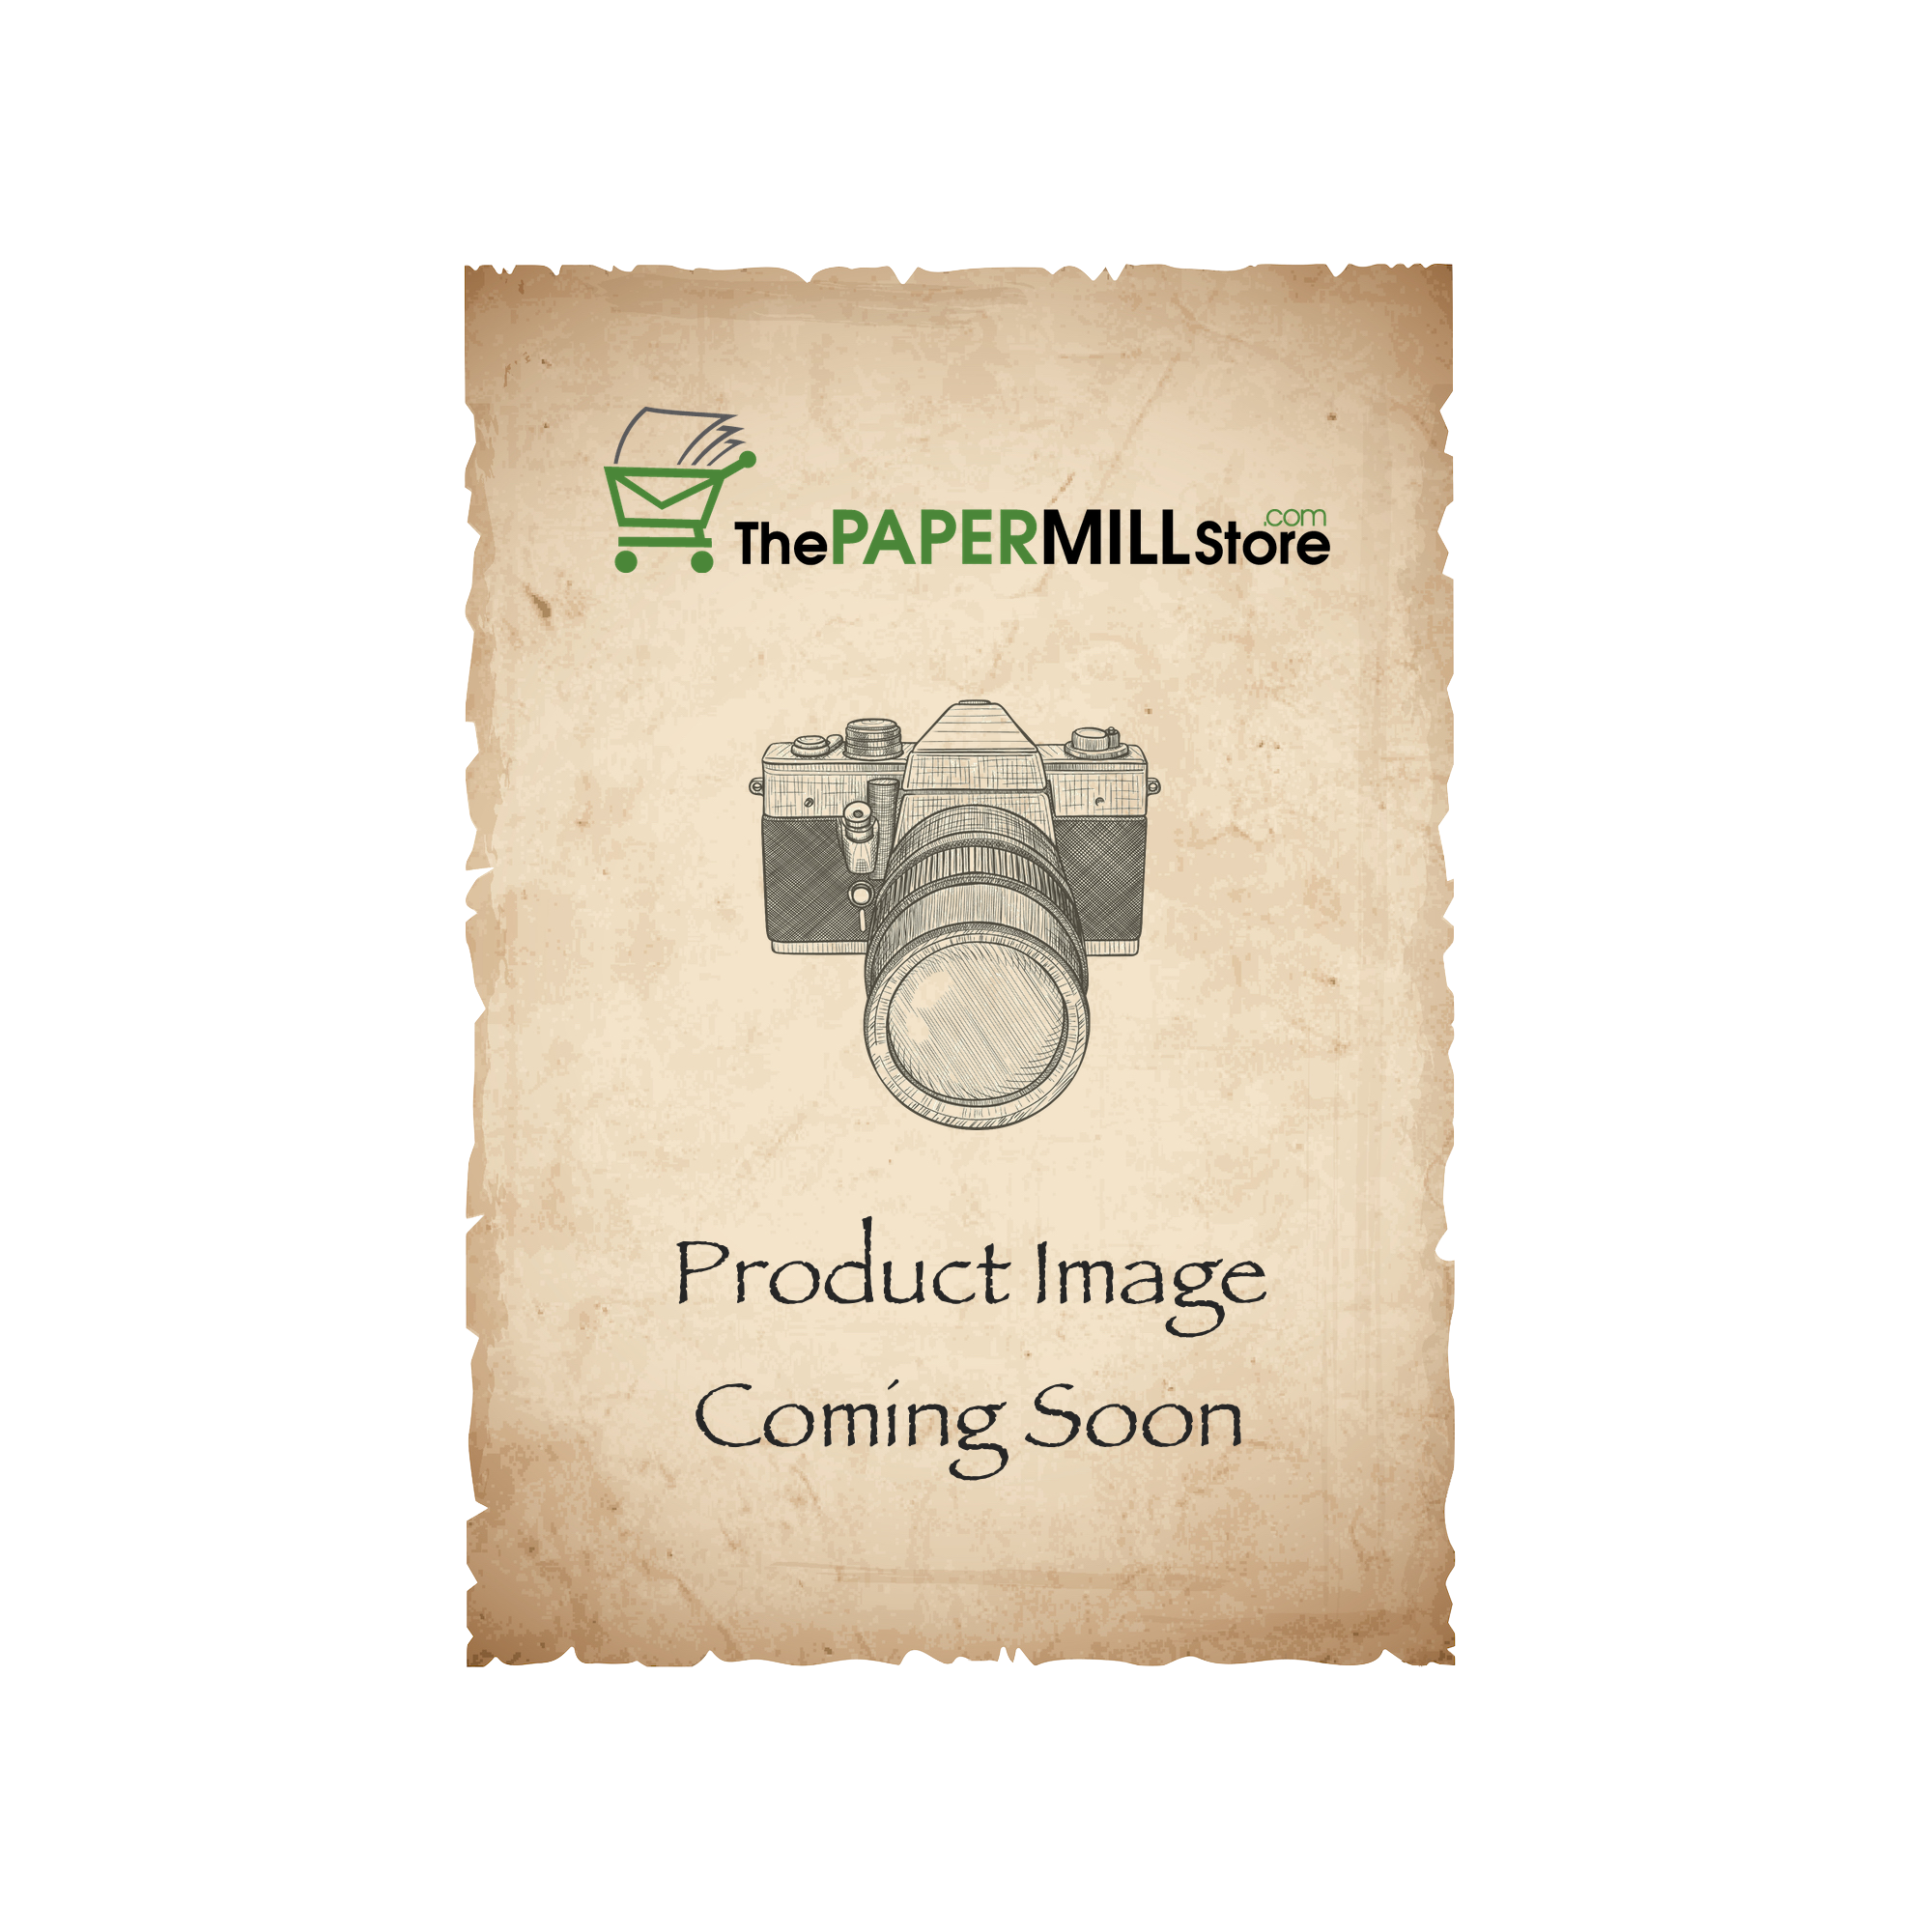 Loop Inxwell i-Tone Eco Cream Card Stock - 18 x 12 in 80 lb Cover Vertical  100% Recycled 250 per Package